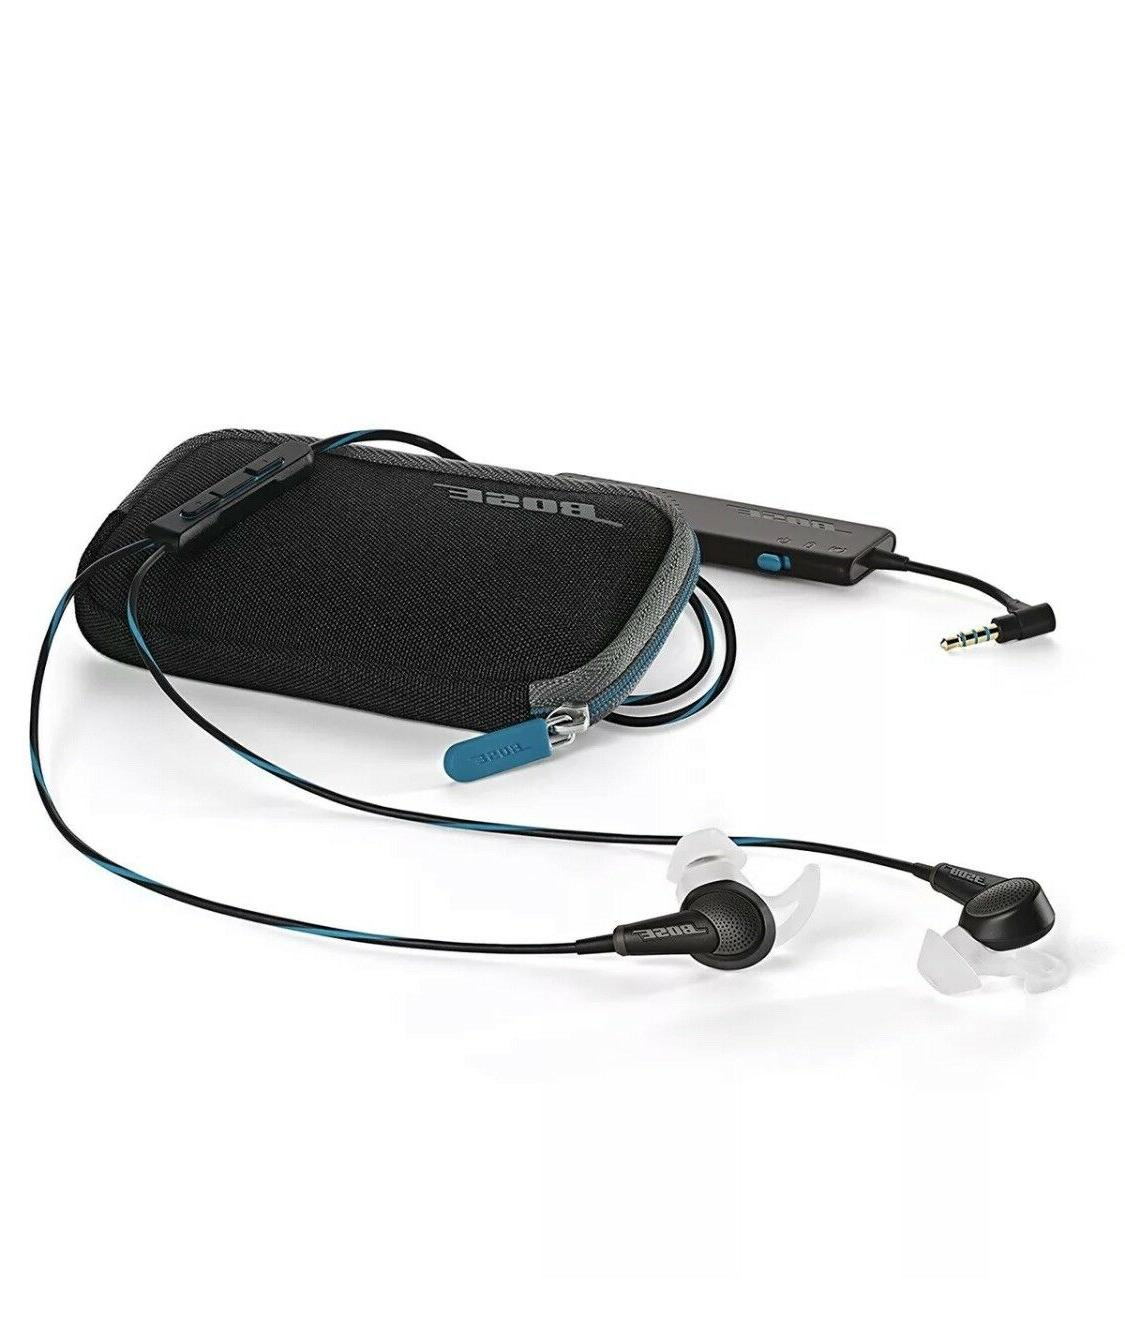 bose qc20 quietcomfort acoustic